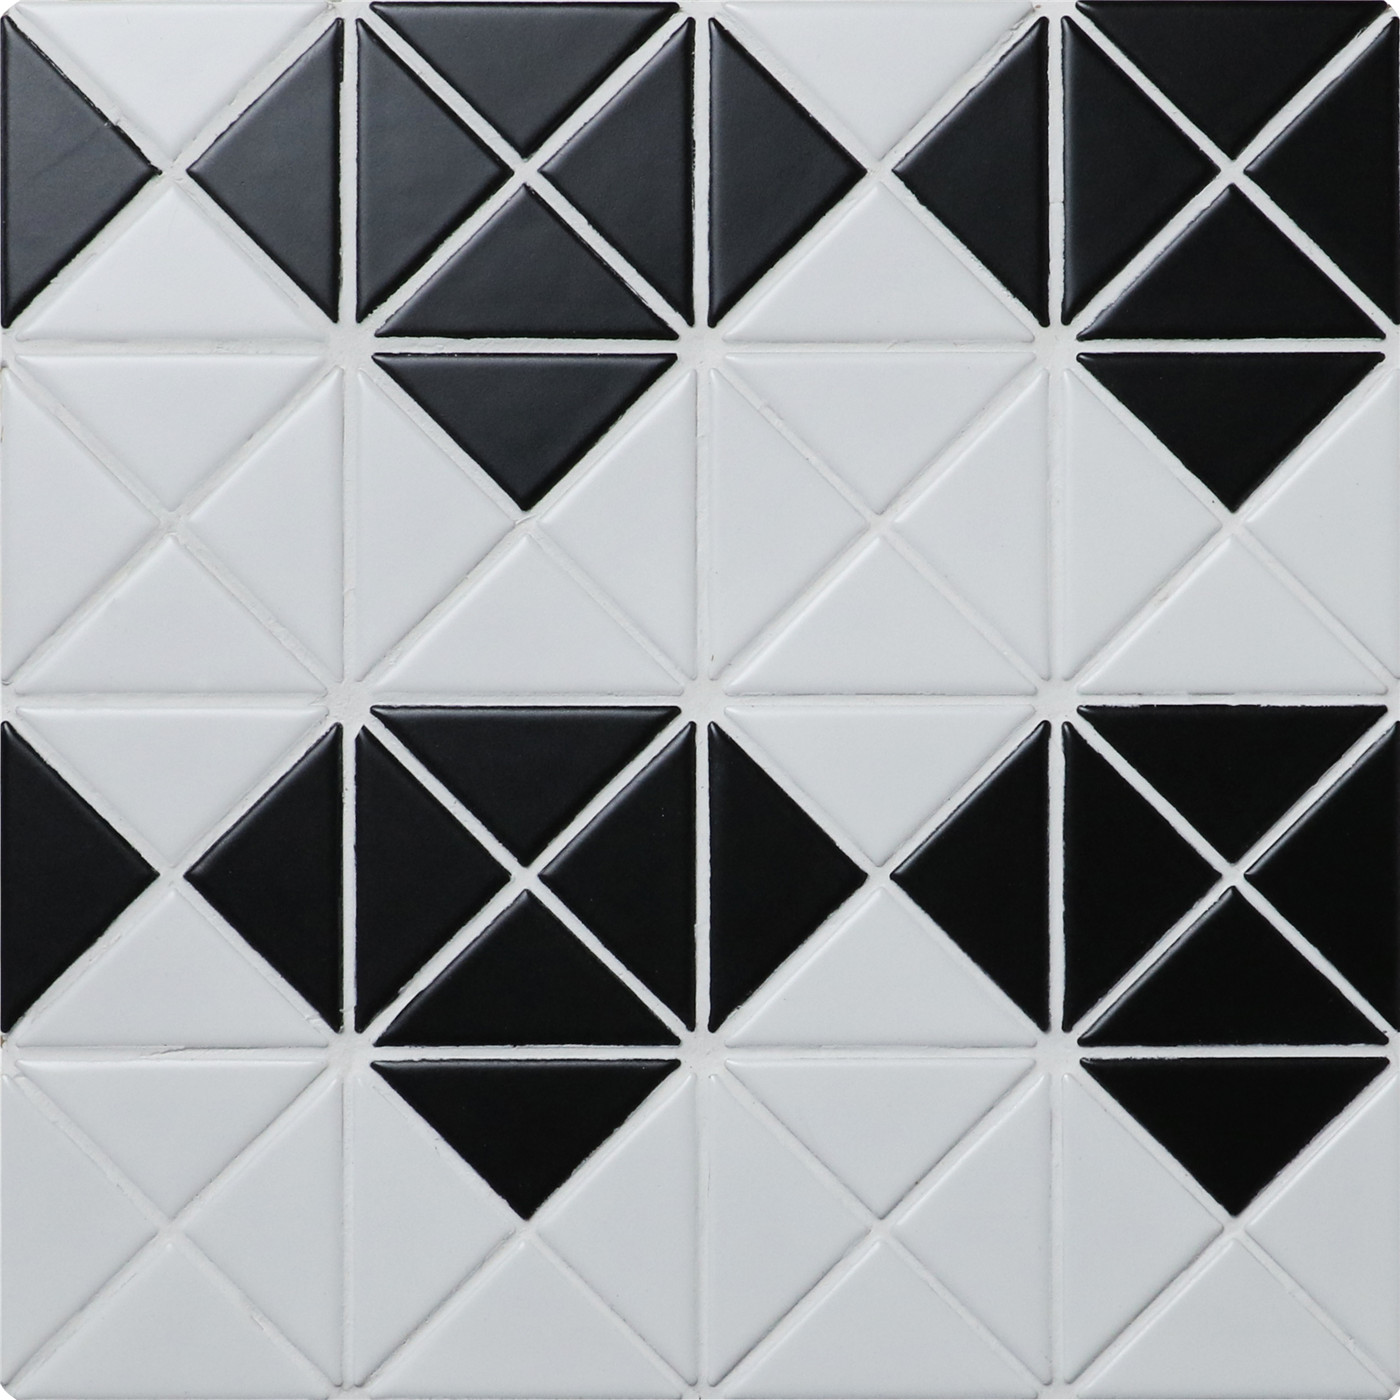 Image Result For Black And White Triangle Floor Tiles